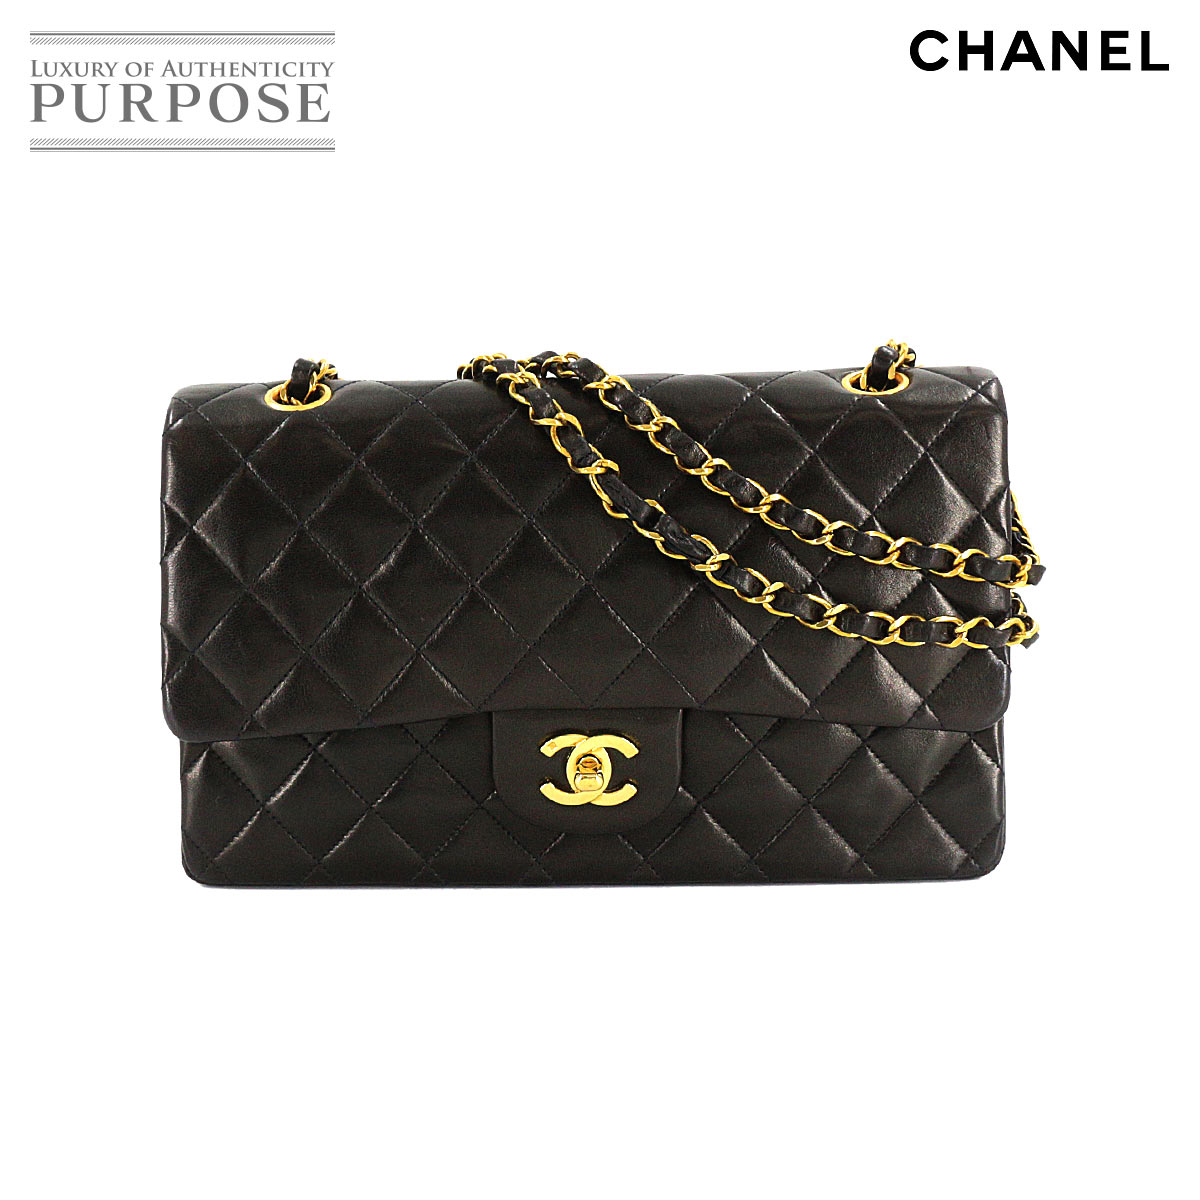 [Same as new] Chanel CHANEL Matrasse 25 Chain Shoulder Bag Leather Black A01112 [Used]